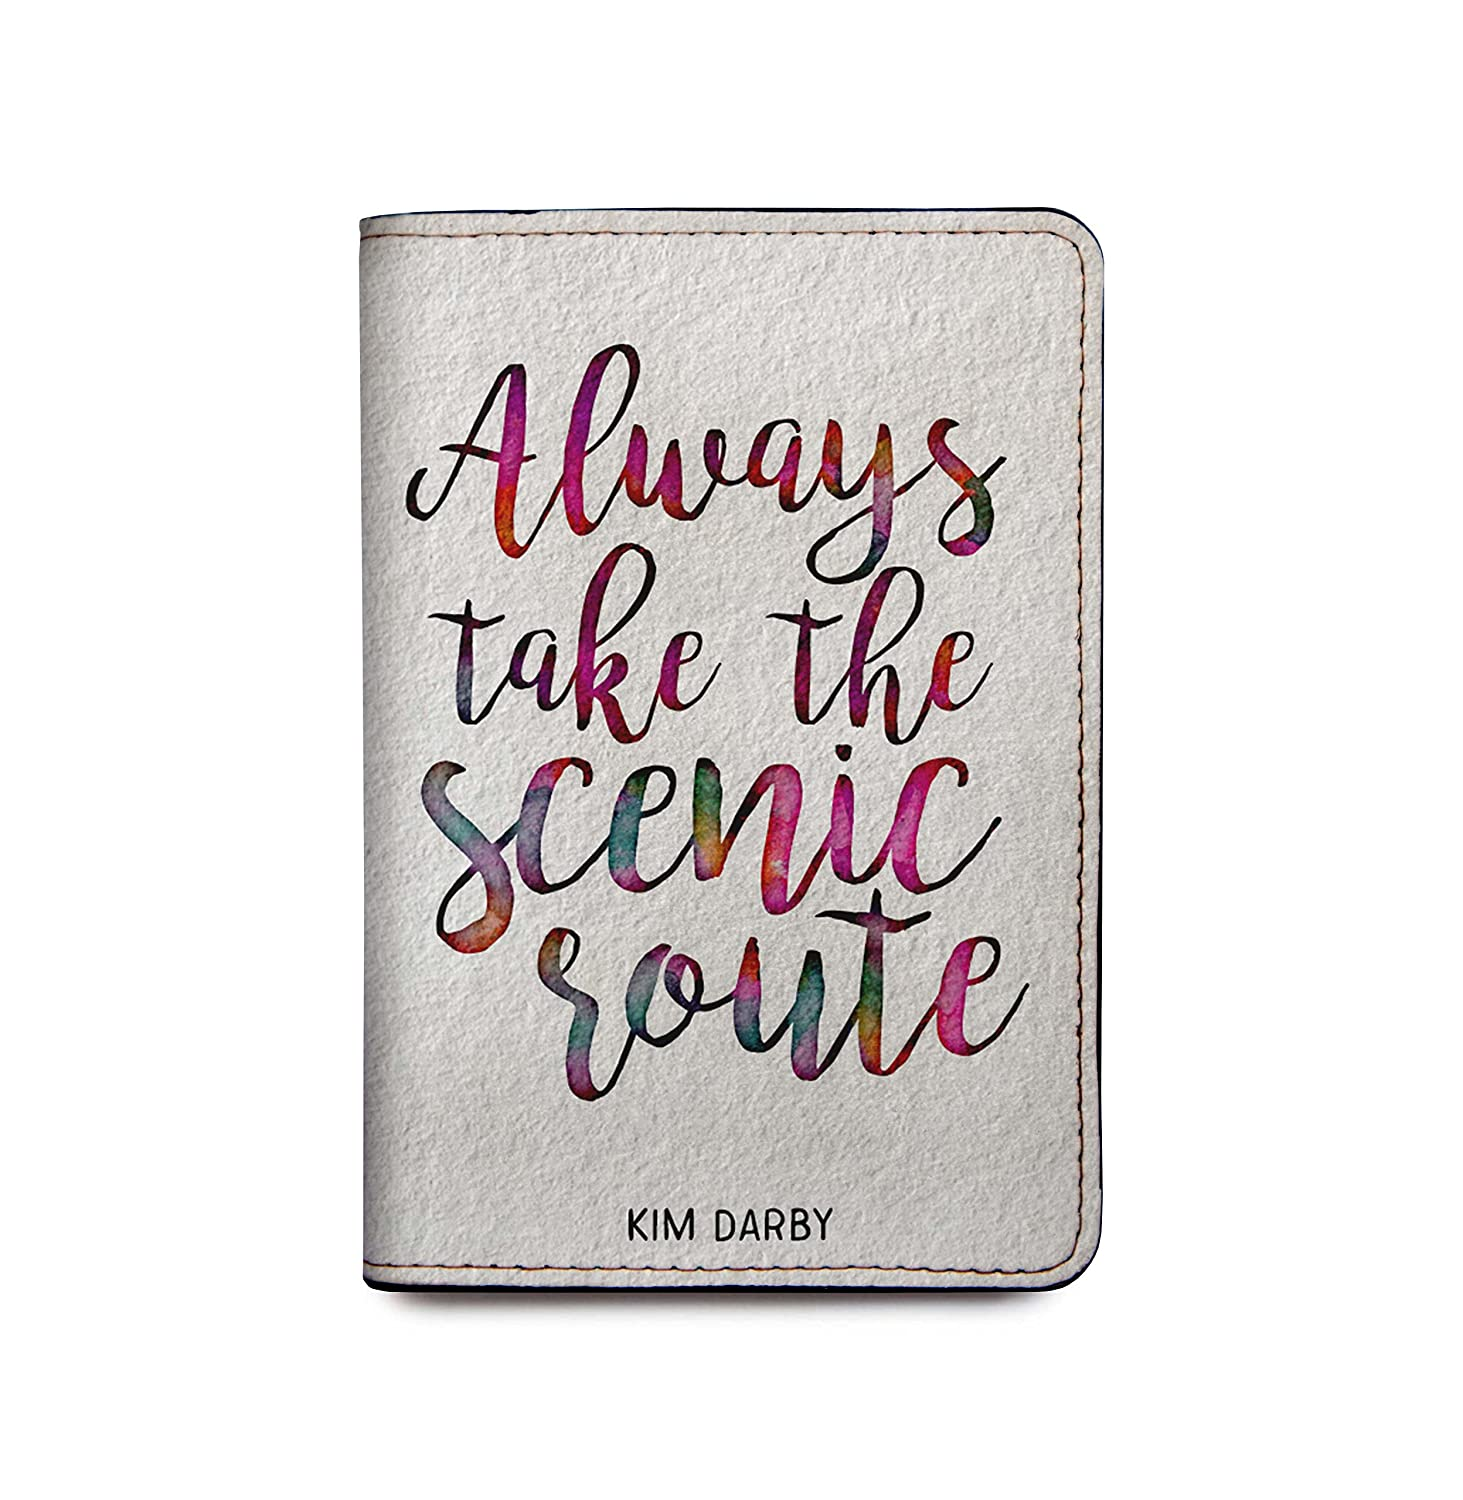 dc13d3a06cff Personalized RFID Leather Passport Cover Wallet -Always Take The Scenic  Route